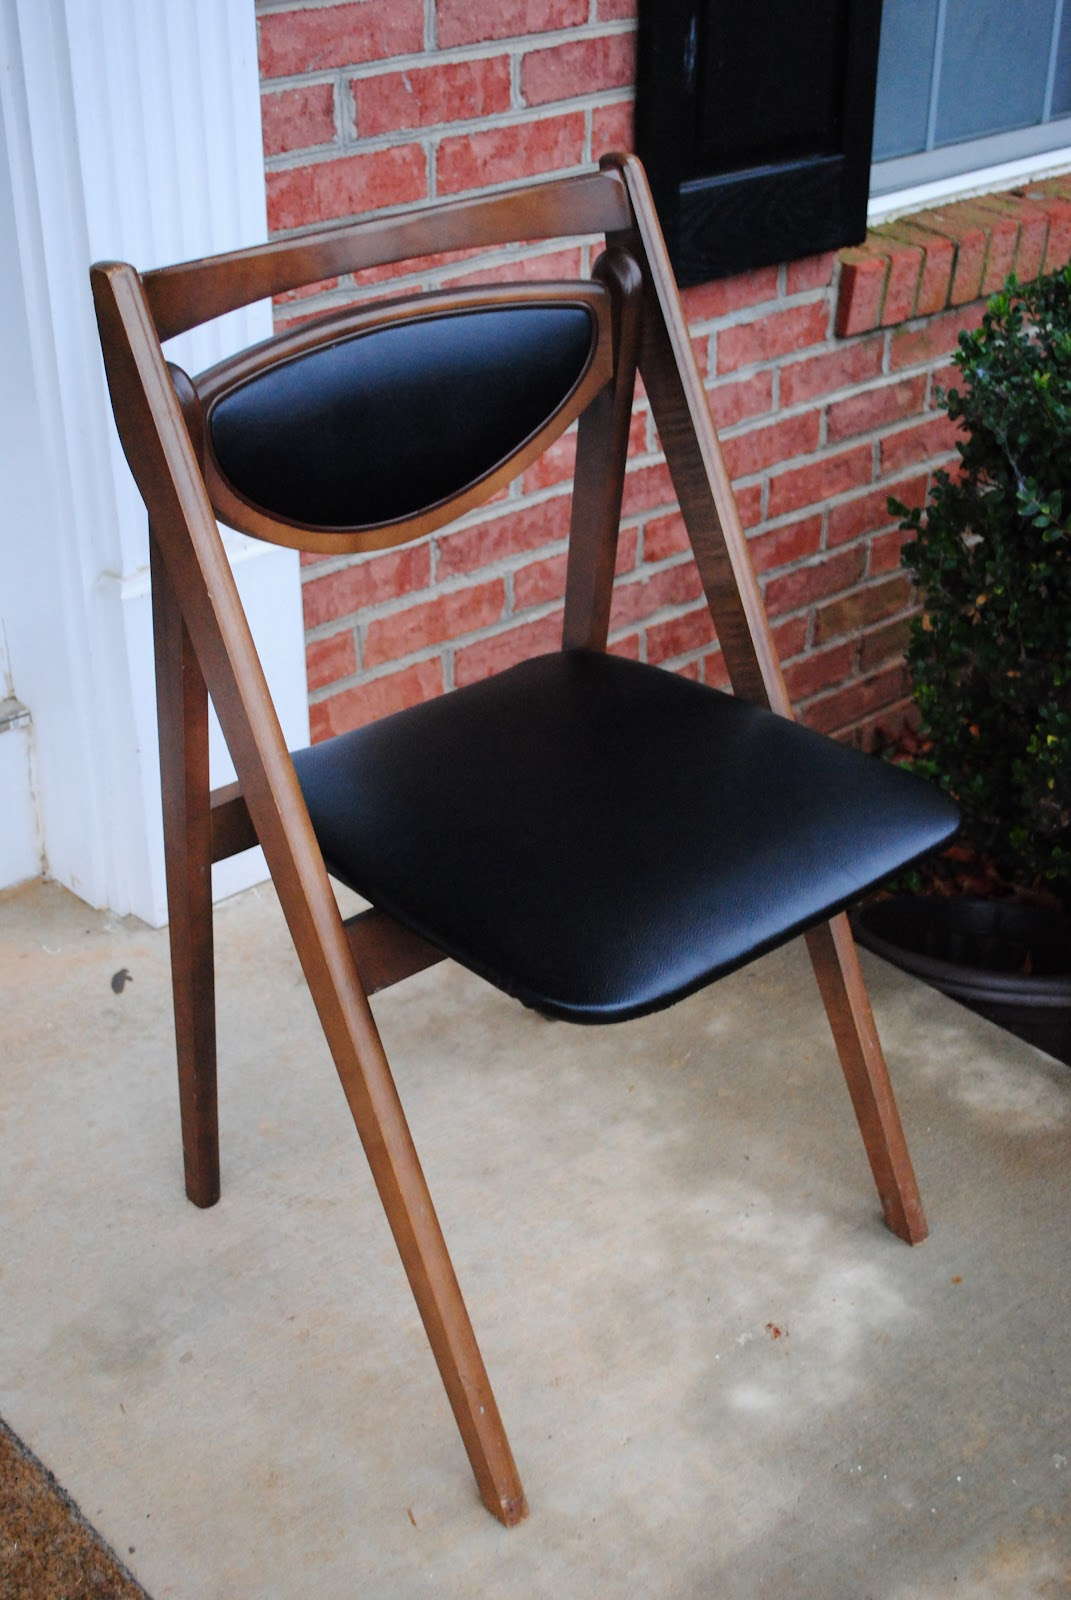 Stakmore Folding Chairs Vintage.Mid Century Modern Finds 3 Vintage Mid Century Stakmore